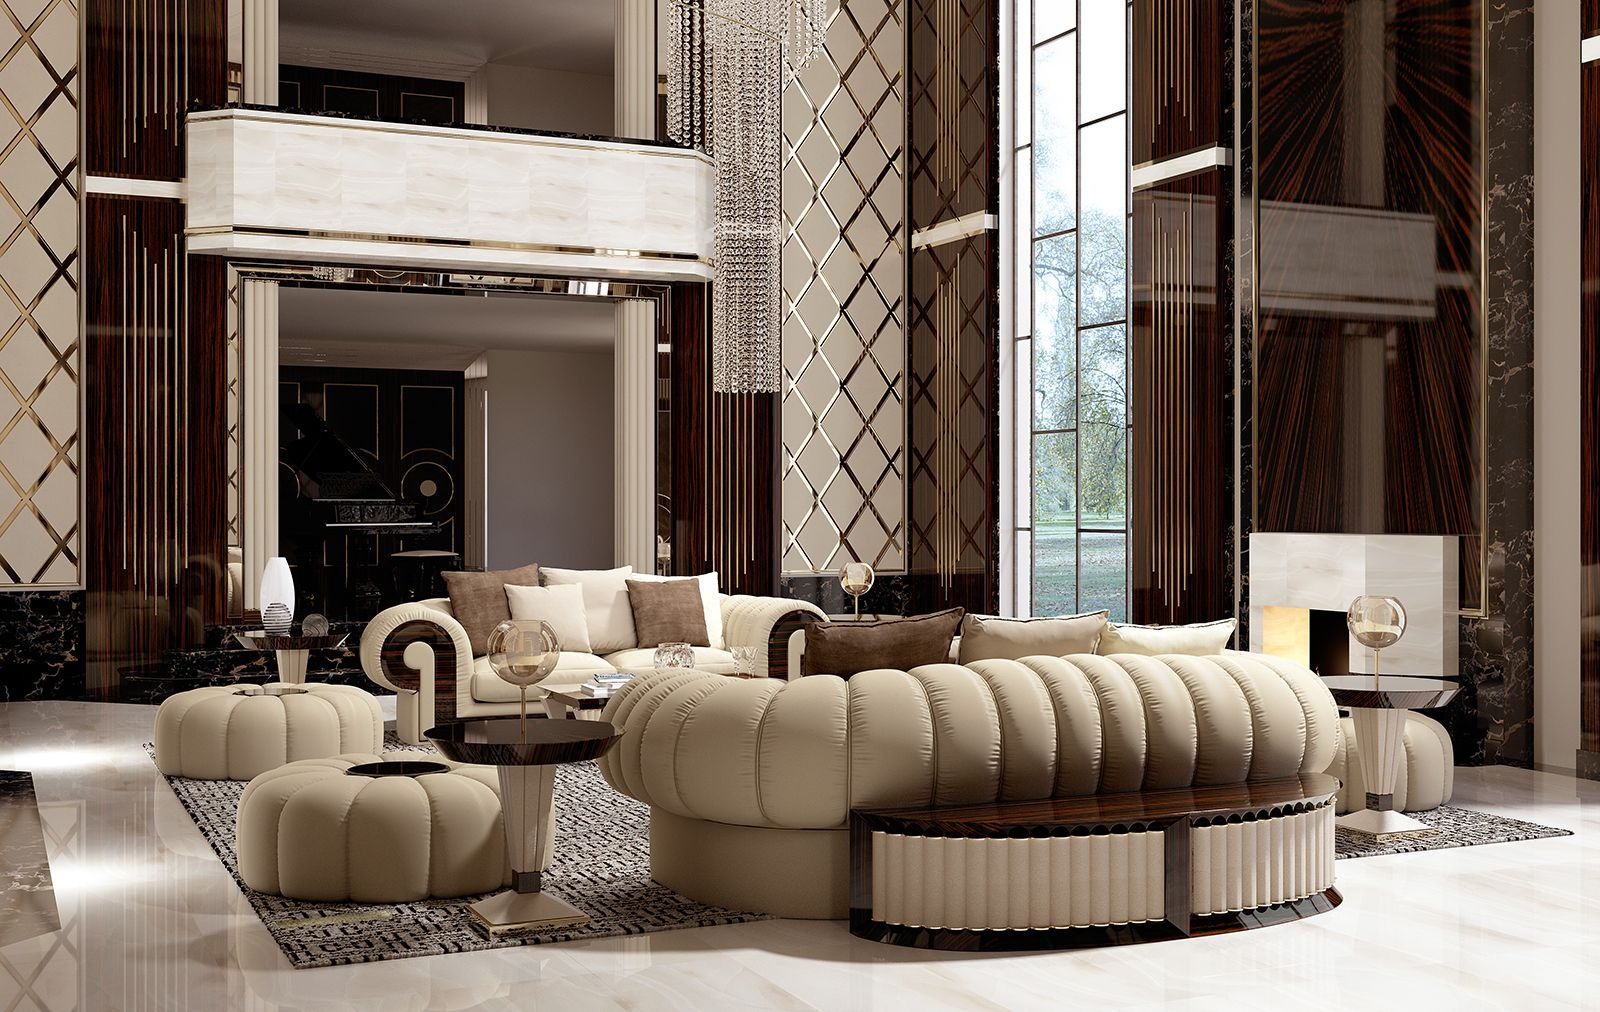 Italian Furniture for exclusive and modern design ...